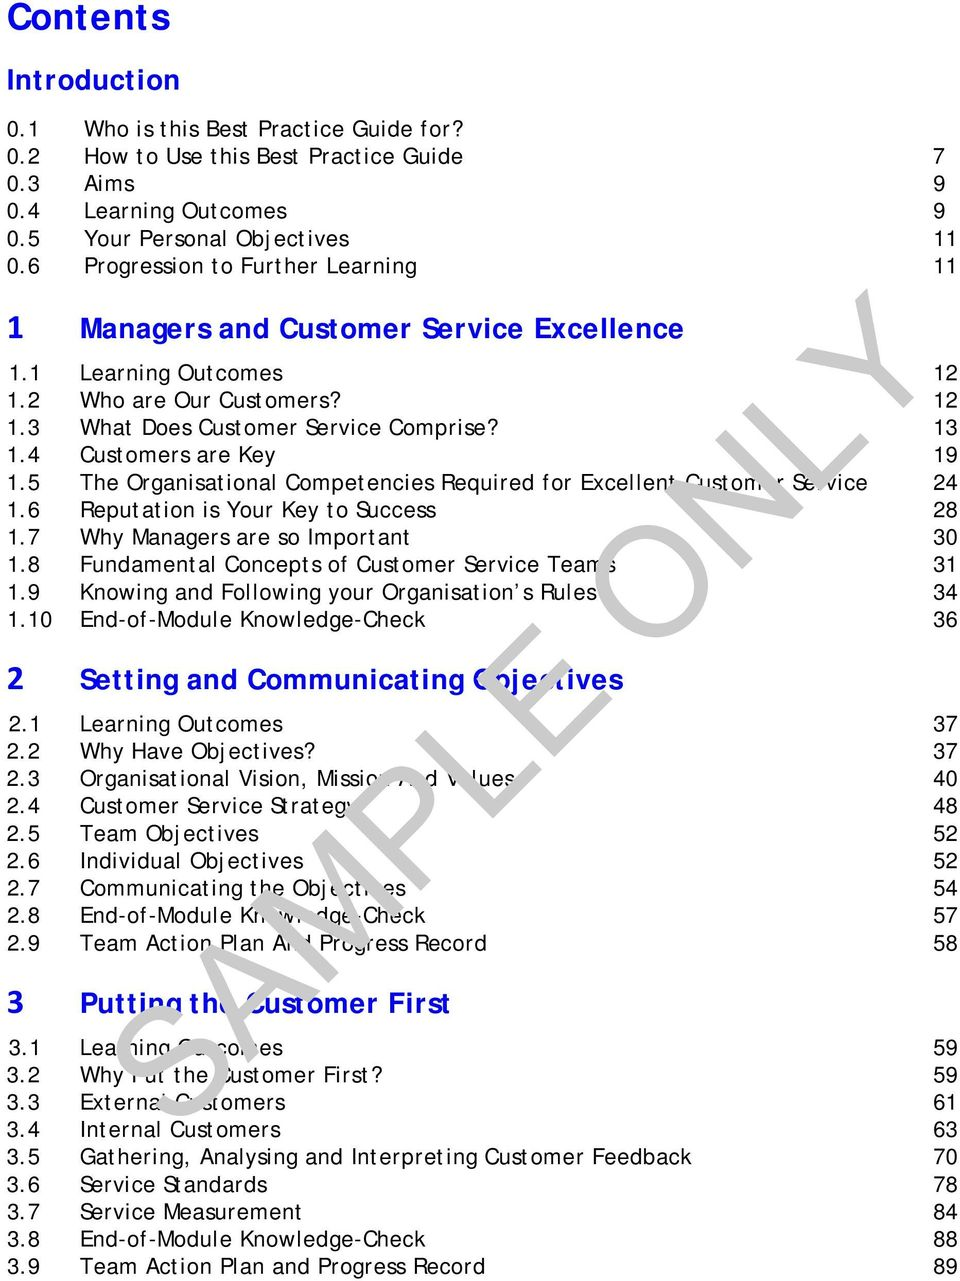 best practice guide sample only for customer service managers 4 customers are key 19 1 5 the organisational competencies required for excellent customer service 24 1 6